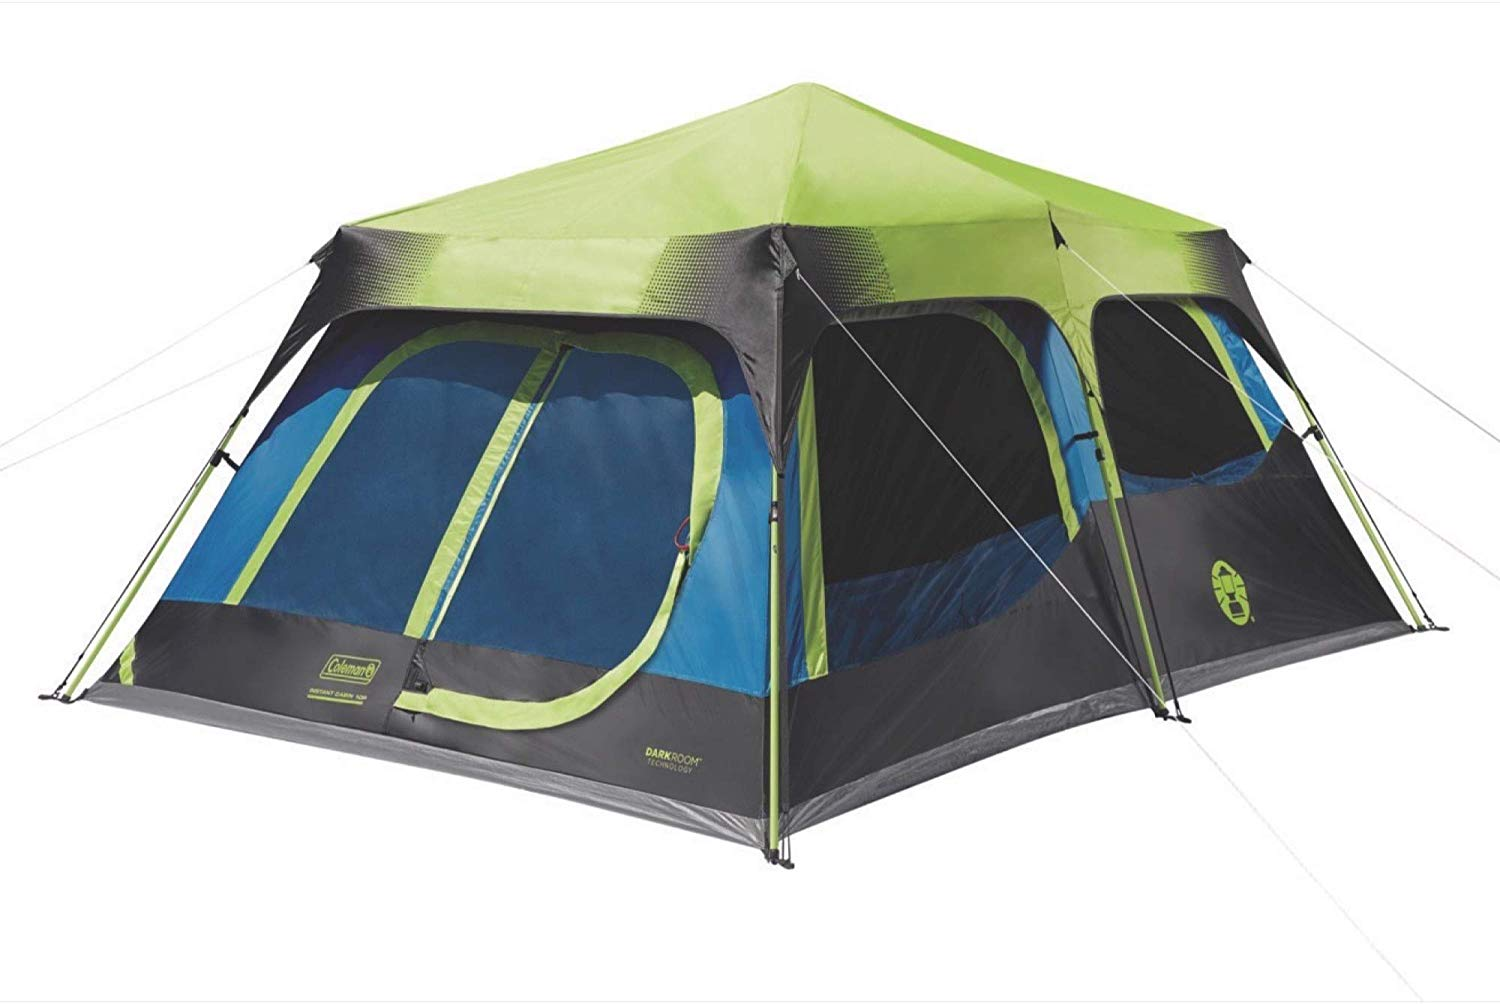 Tents you can stand up in